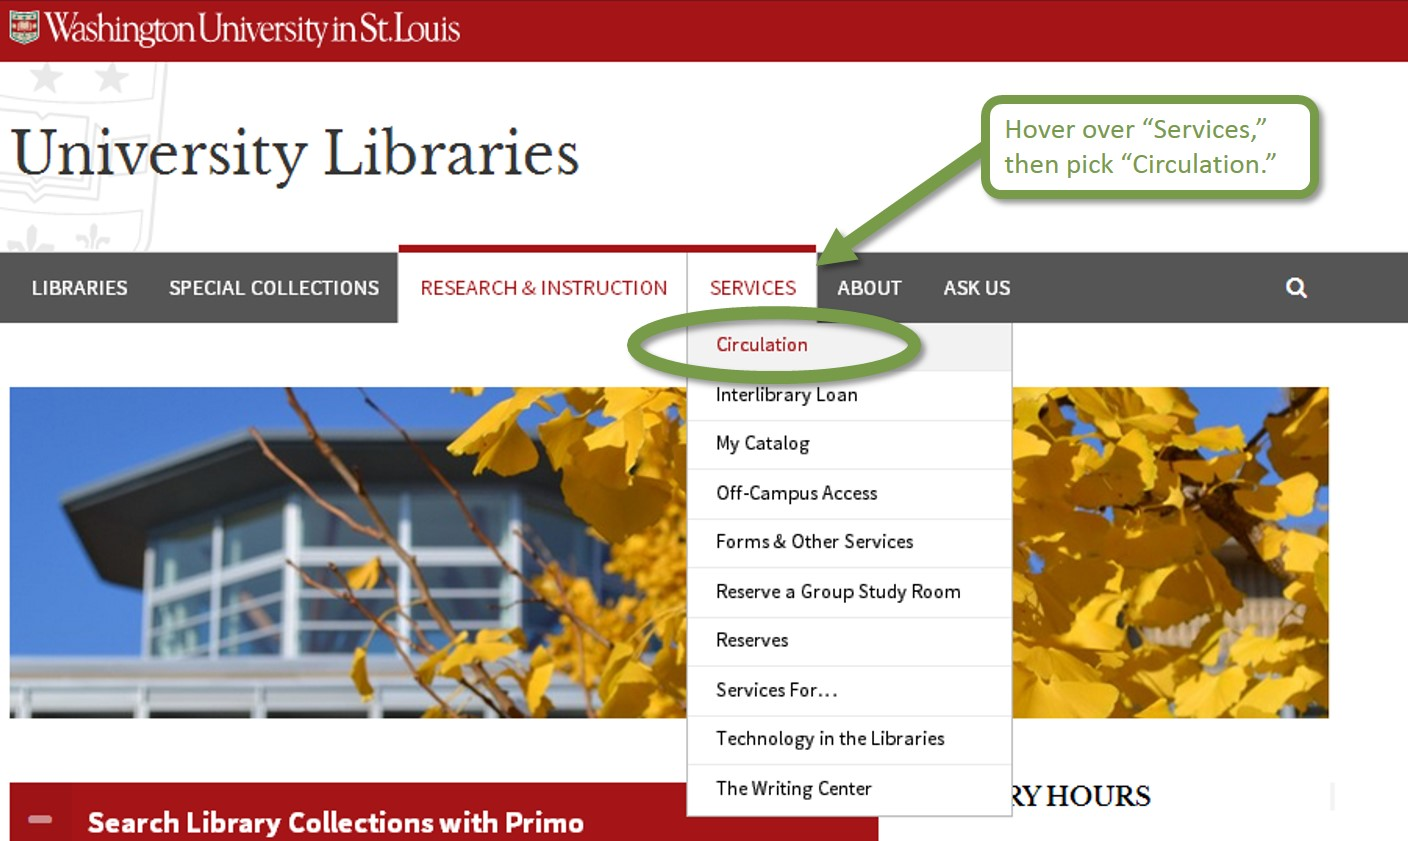 A screenshot showing the Circulation option in the Services drop-down menu on the library homepage.